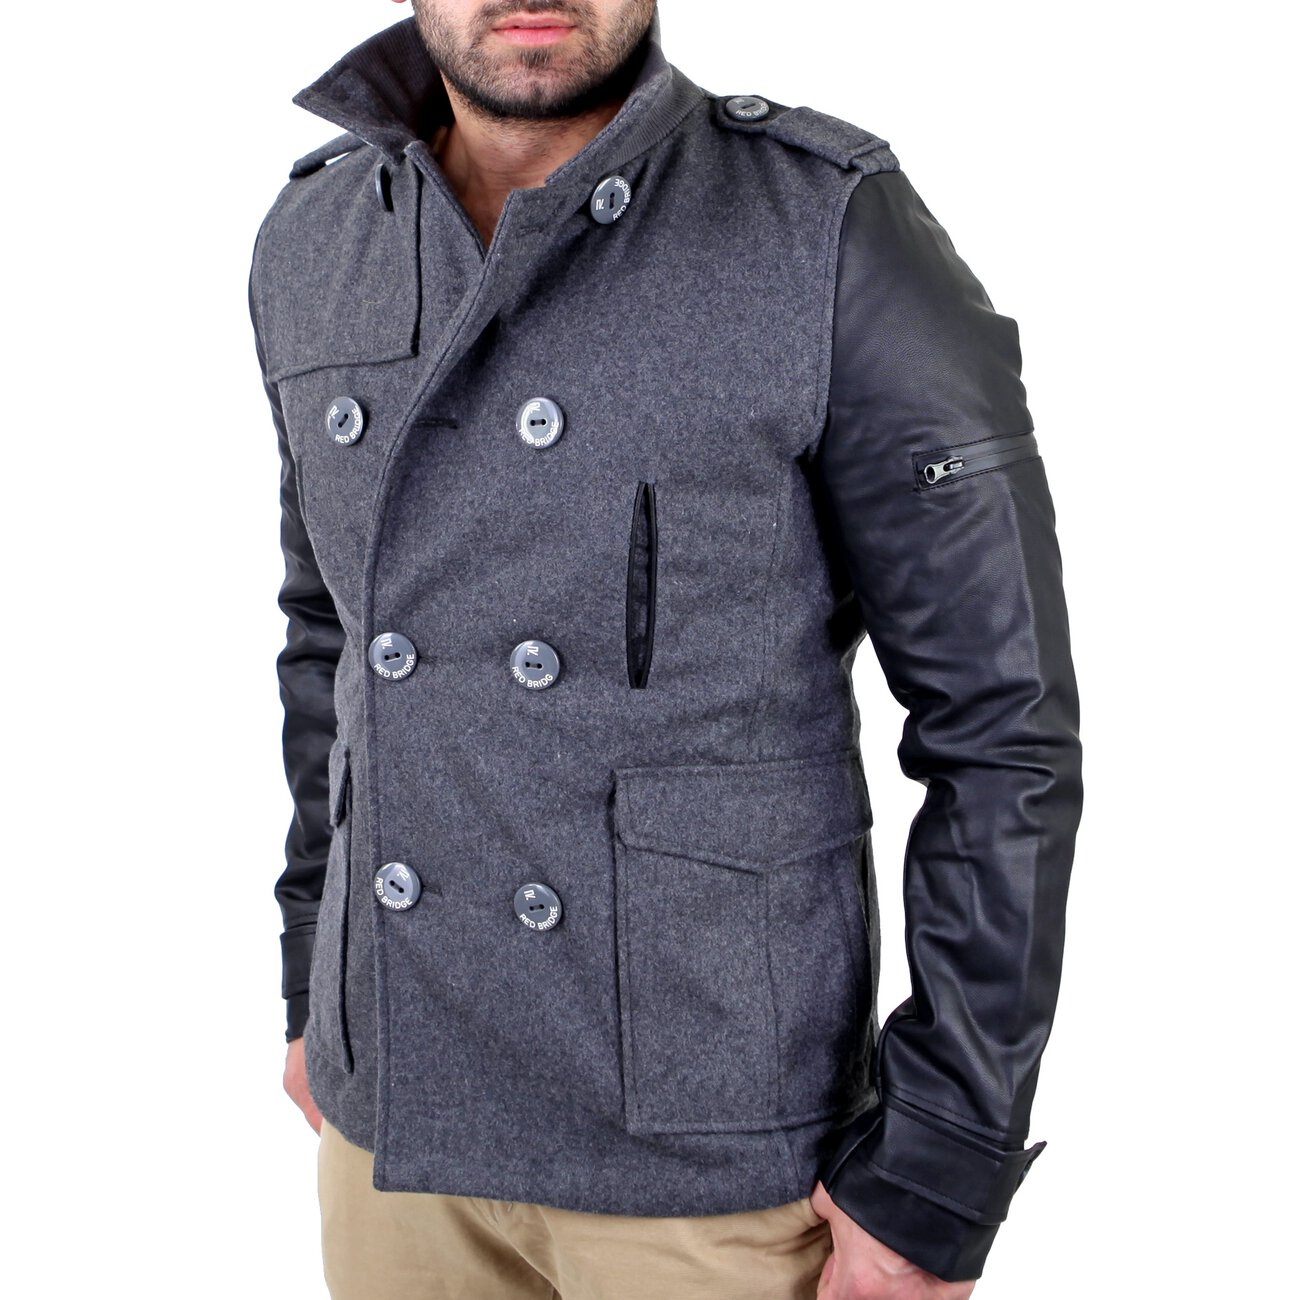 Redbridge Mantel Herren Material Mix Jacke Kurz Mantel RB 41485